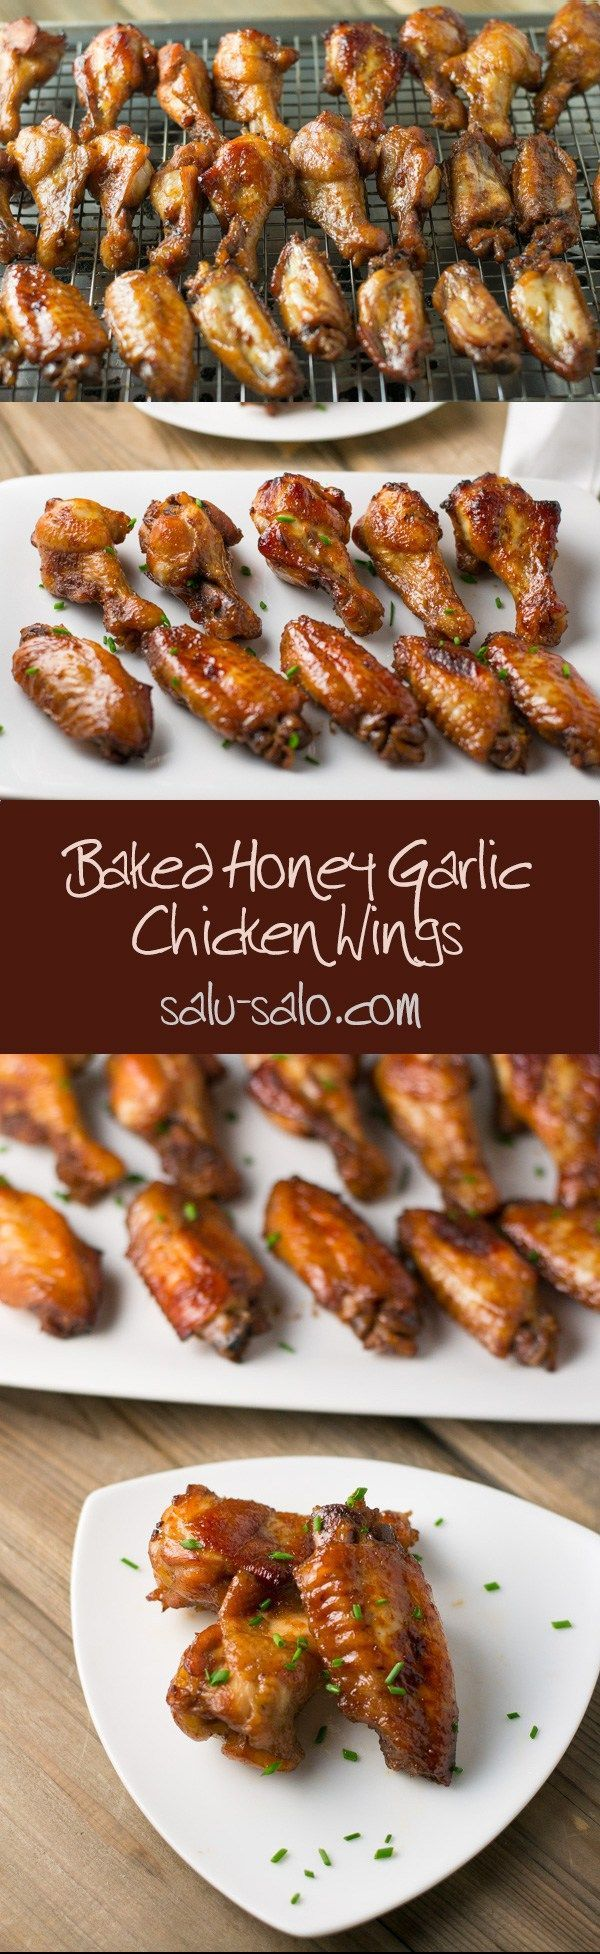 Baked Honey Garlic Chicken Wings - a healthy alternative to fried honey garlic chicken wings. Honey, soy sauce, and ketchup are used as marinade. : salusalo